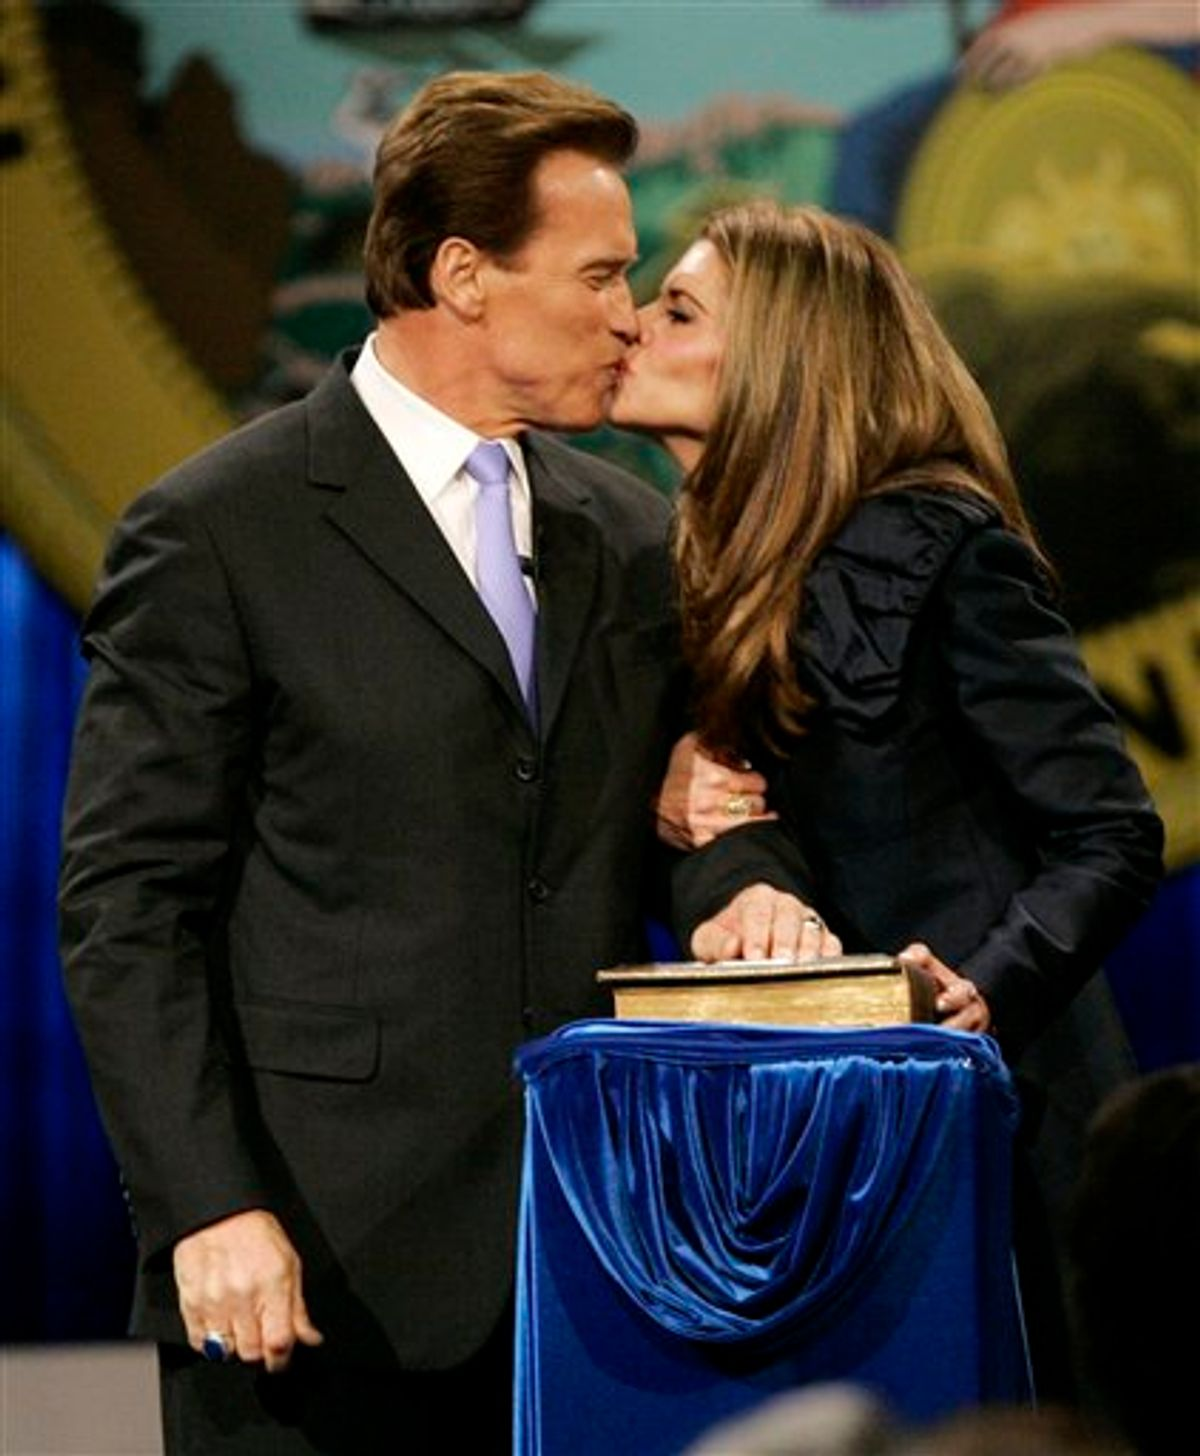 FILE - In this file photo taken Friday, Jan. 5, 2007, California Gov. Arnold Schwarzenegger kisses his wife, Maria Shriver, after taking his oath of office in Sacramento, Calif, .The couple announced their separation Monday, May 9, 2011. (AP Photo/Marcio Jose Sanchez, File) (AP)